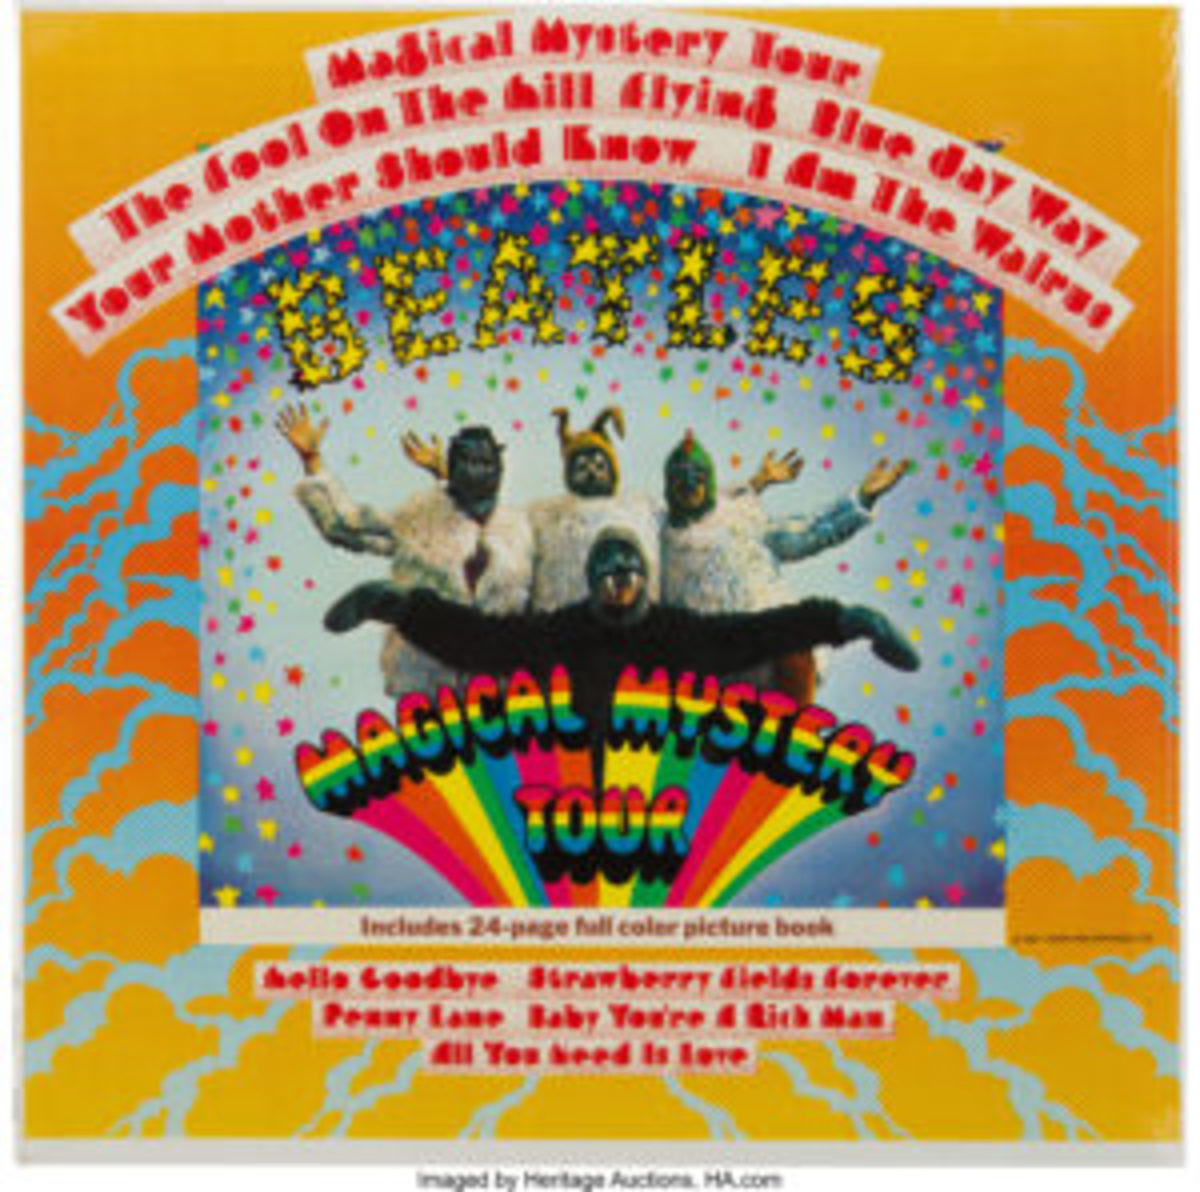 """The """"Magical Mystery Tour"""" original gatefold mono LP (Capitol MAL2835) recently sold for $1,750 at Heritage Auctions. Image courtesy of Heritage Auctions."""